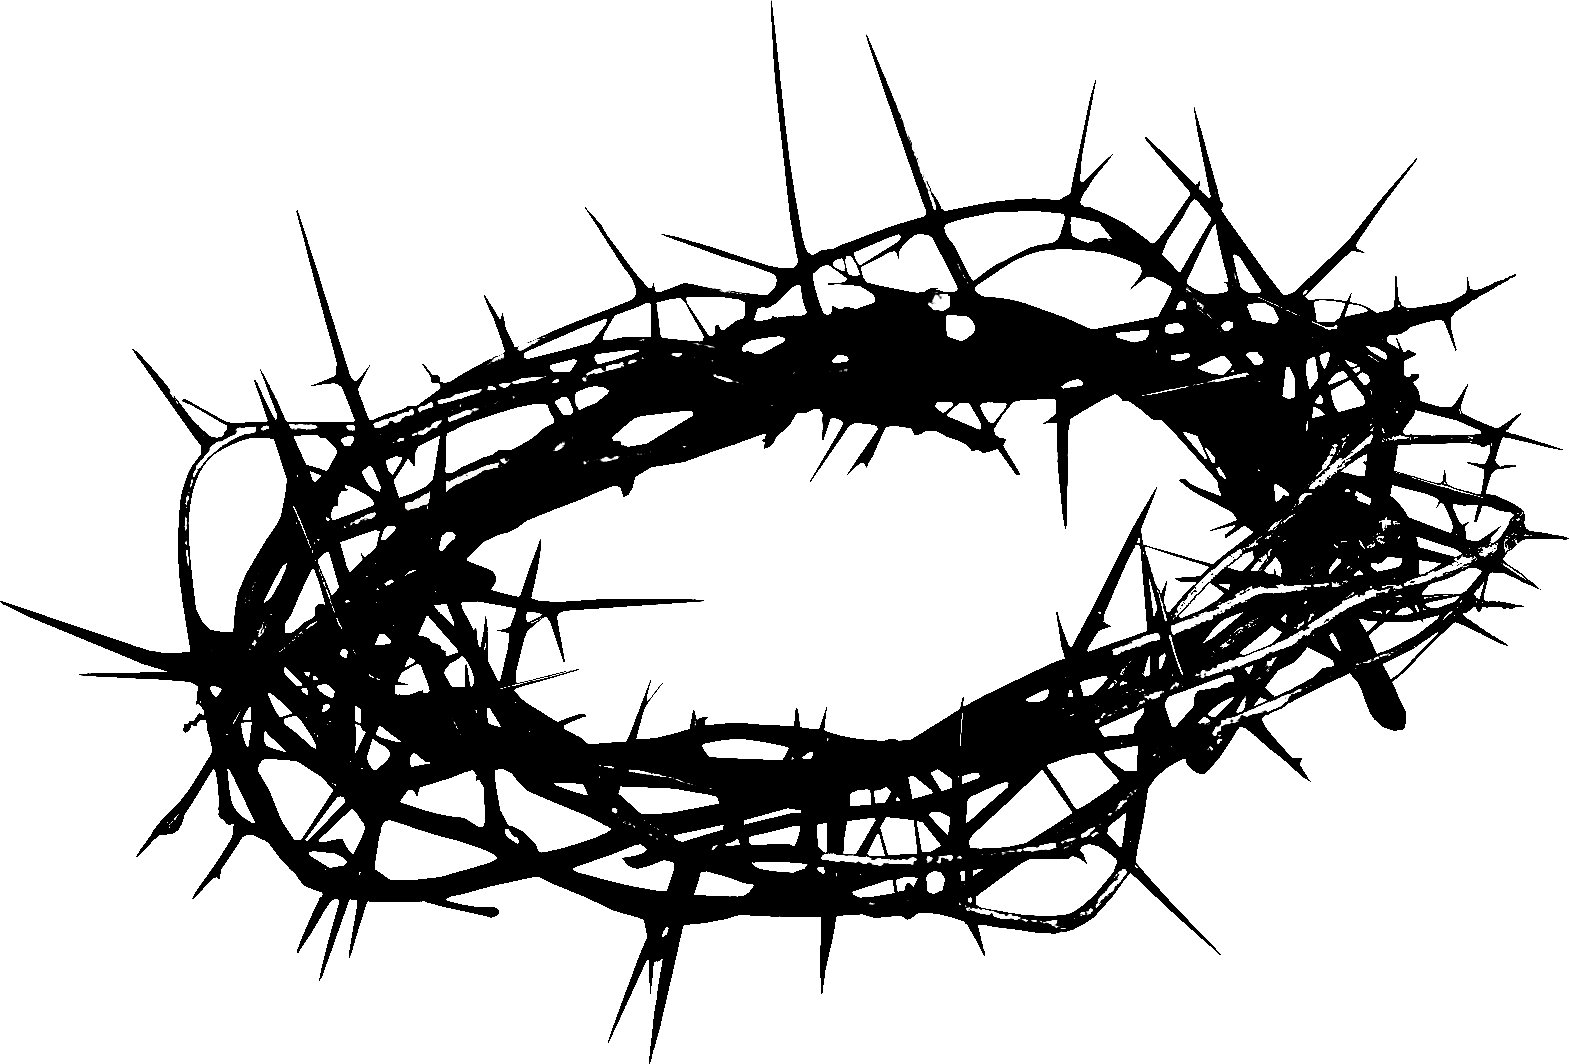 Crown of thorns clipart transparent picture transparent Crown of thorns artwork. Add some colorful flowers to make a ... picture transparent